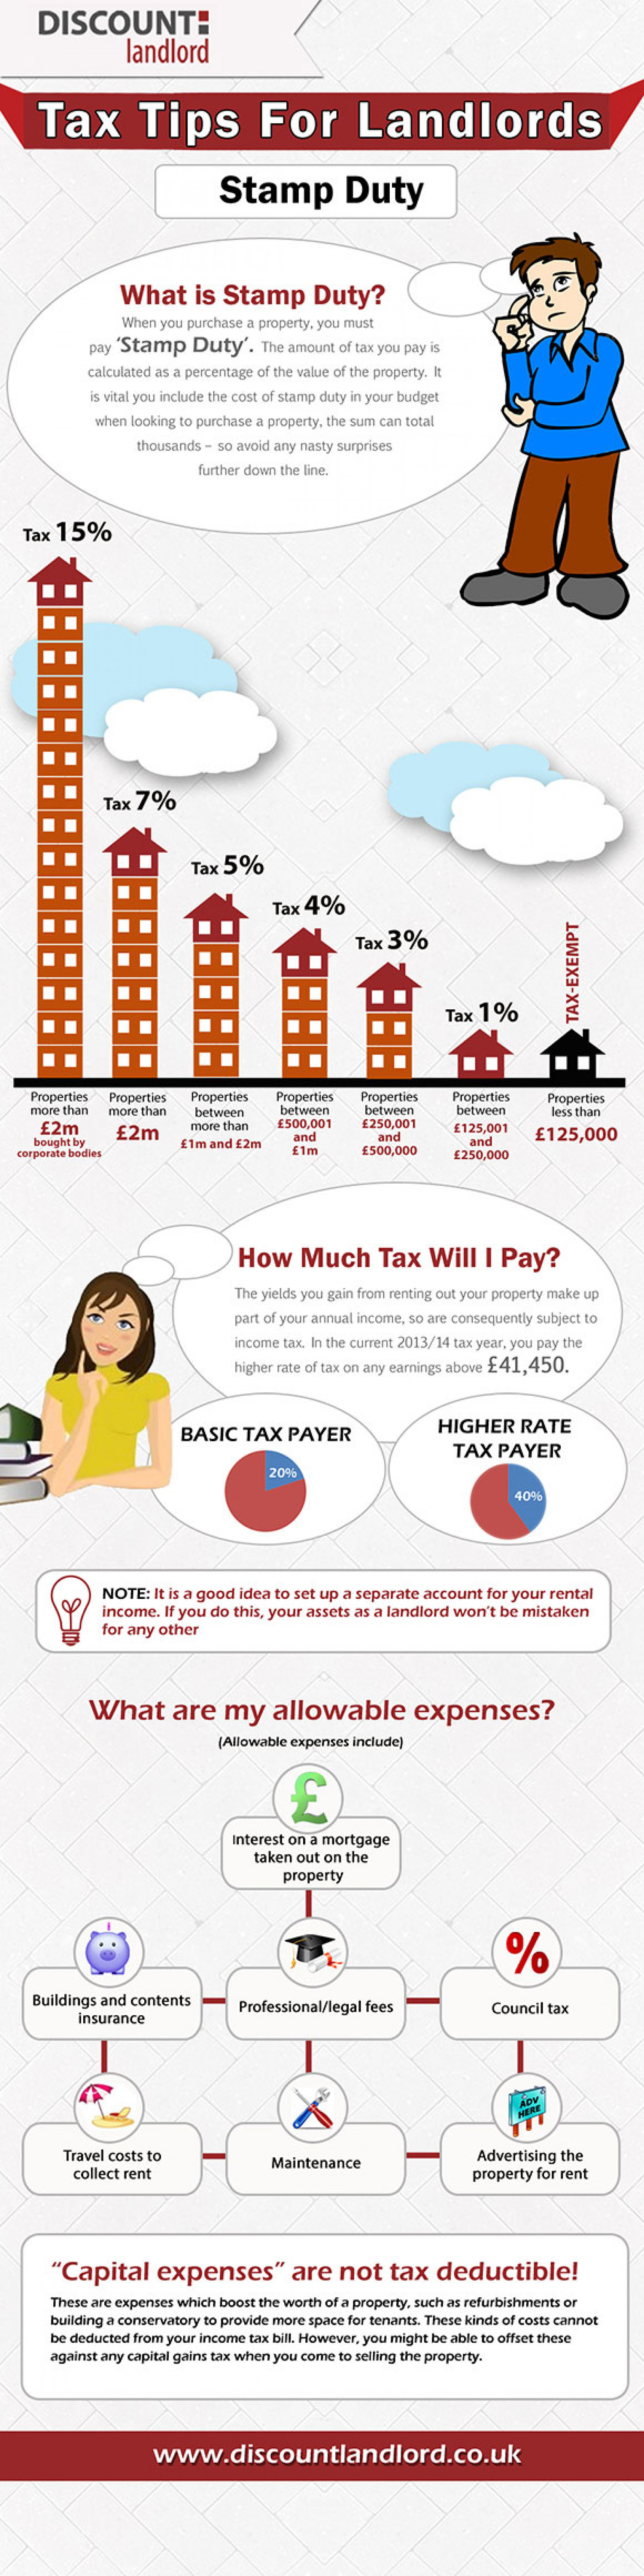 10 Top Tips for Landlords Infographic